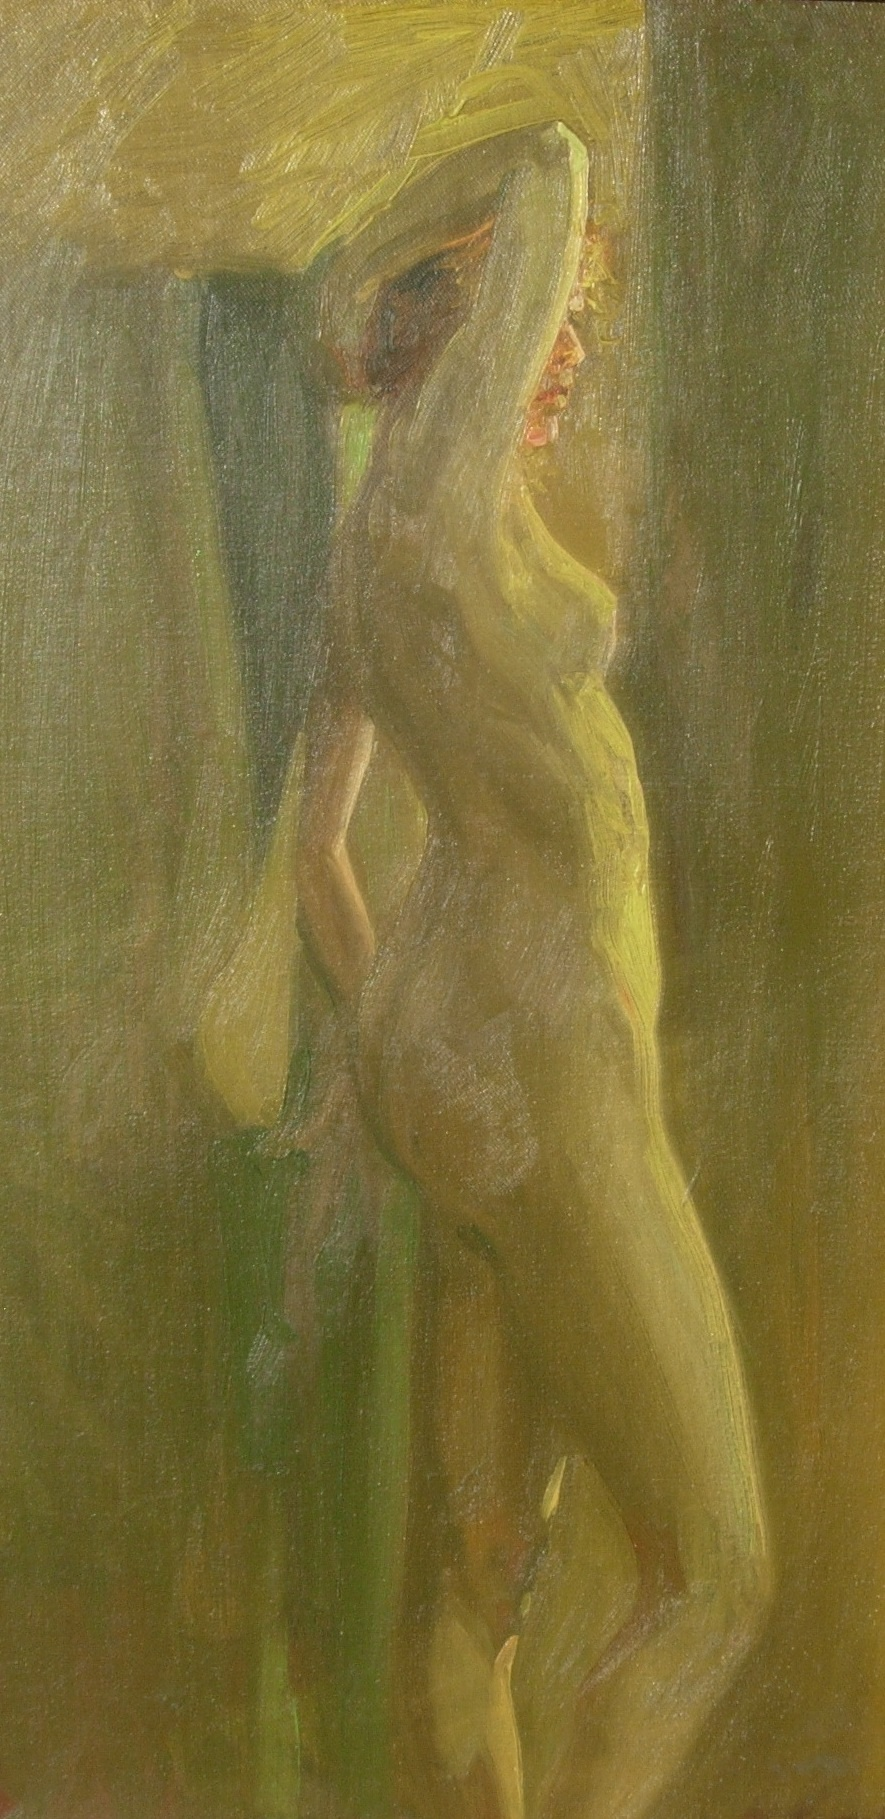 griffith-standingnude-cropped